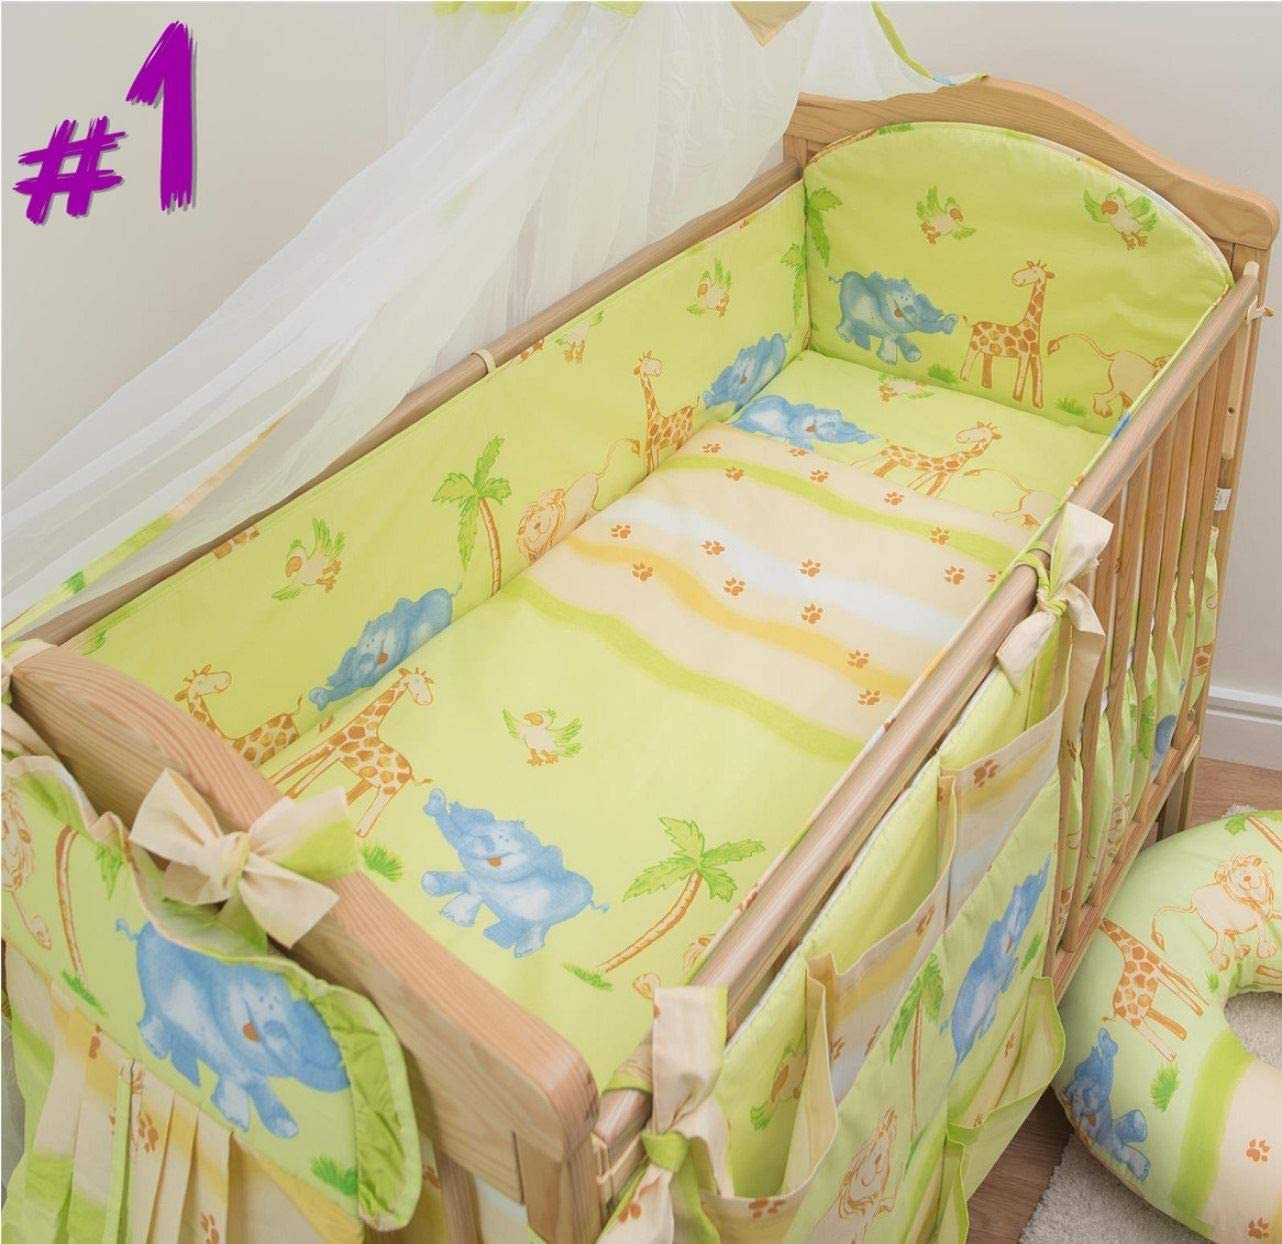 Cream 3 Piece Baby Bedding Set with All-Round 4-Sided Bumper to fit 120x60 cm Cot